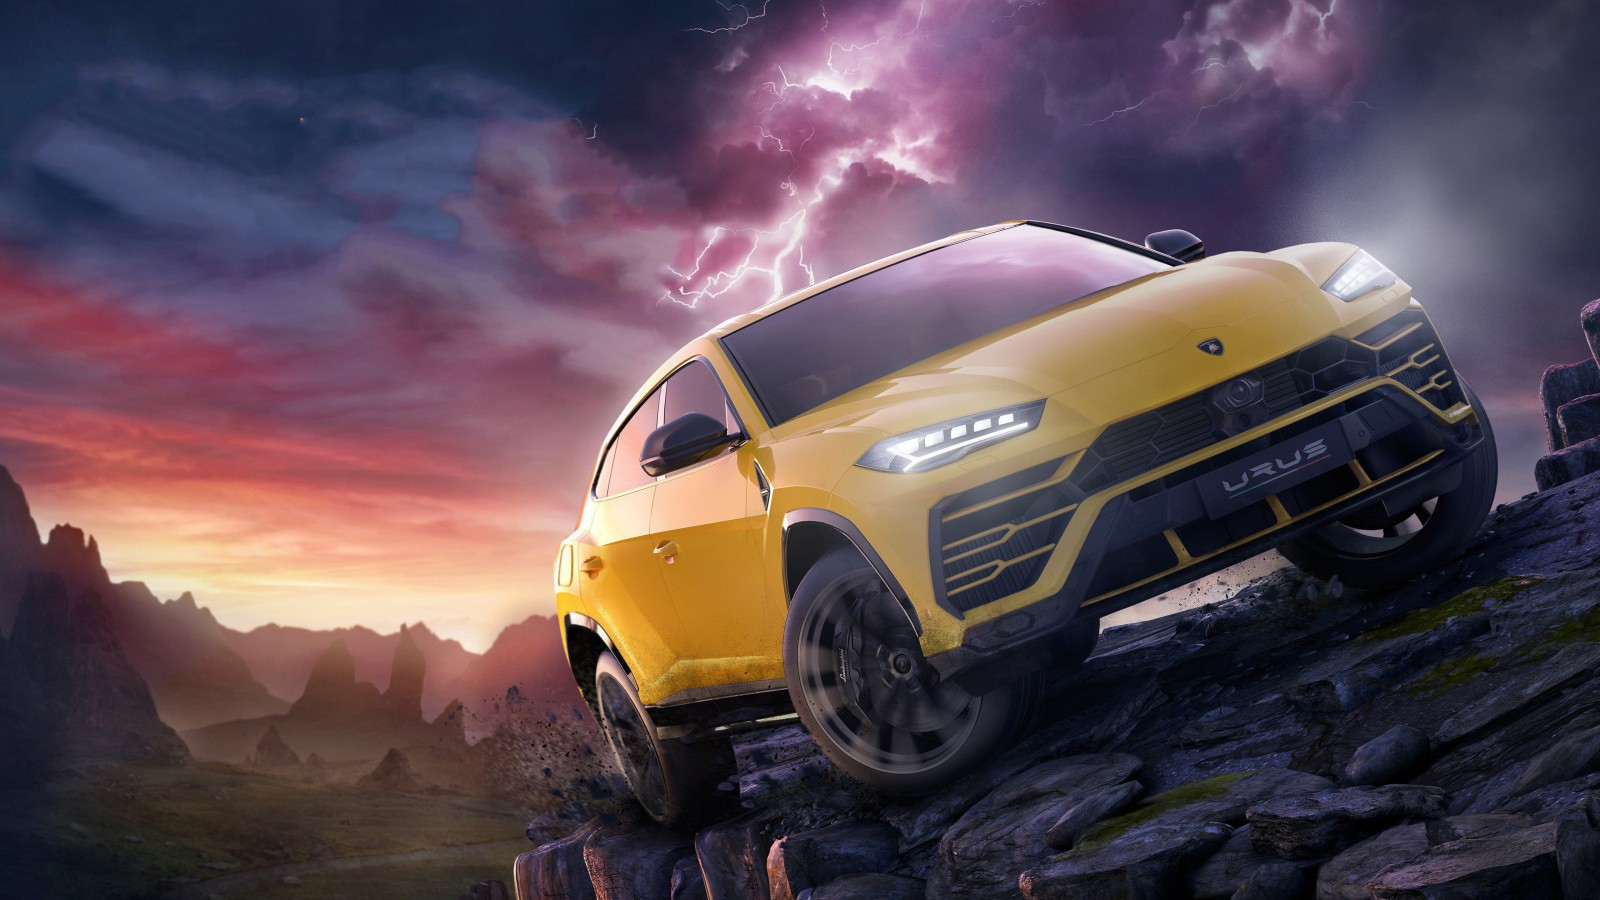 Iphone X Wallpaper Jeep Lamborghini Urus In Forza Horizon 4 5k Wallpaper Hd Car